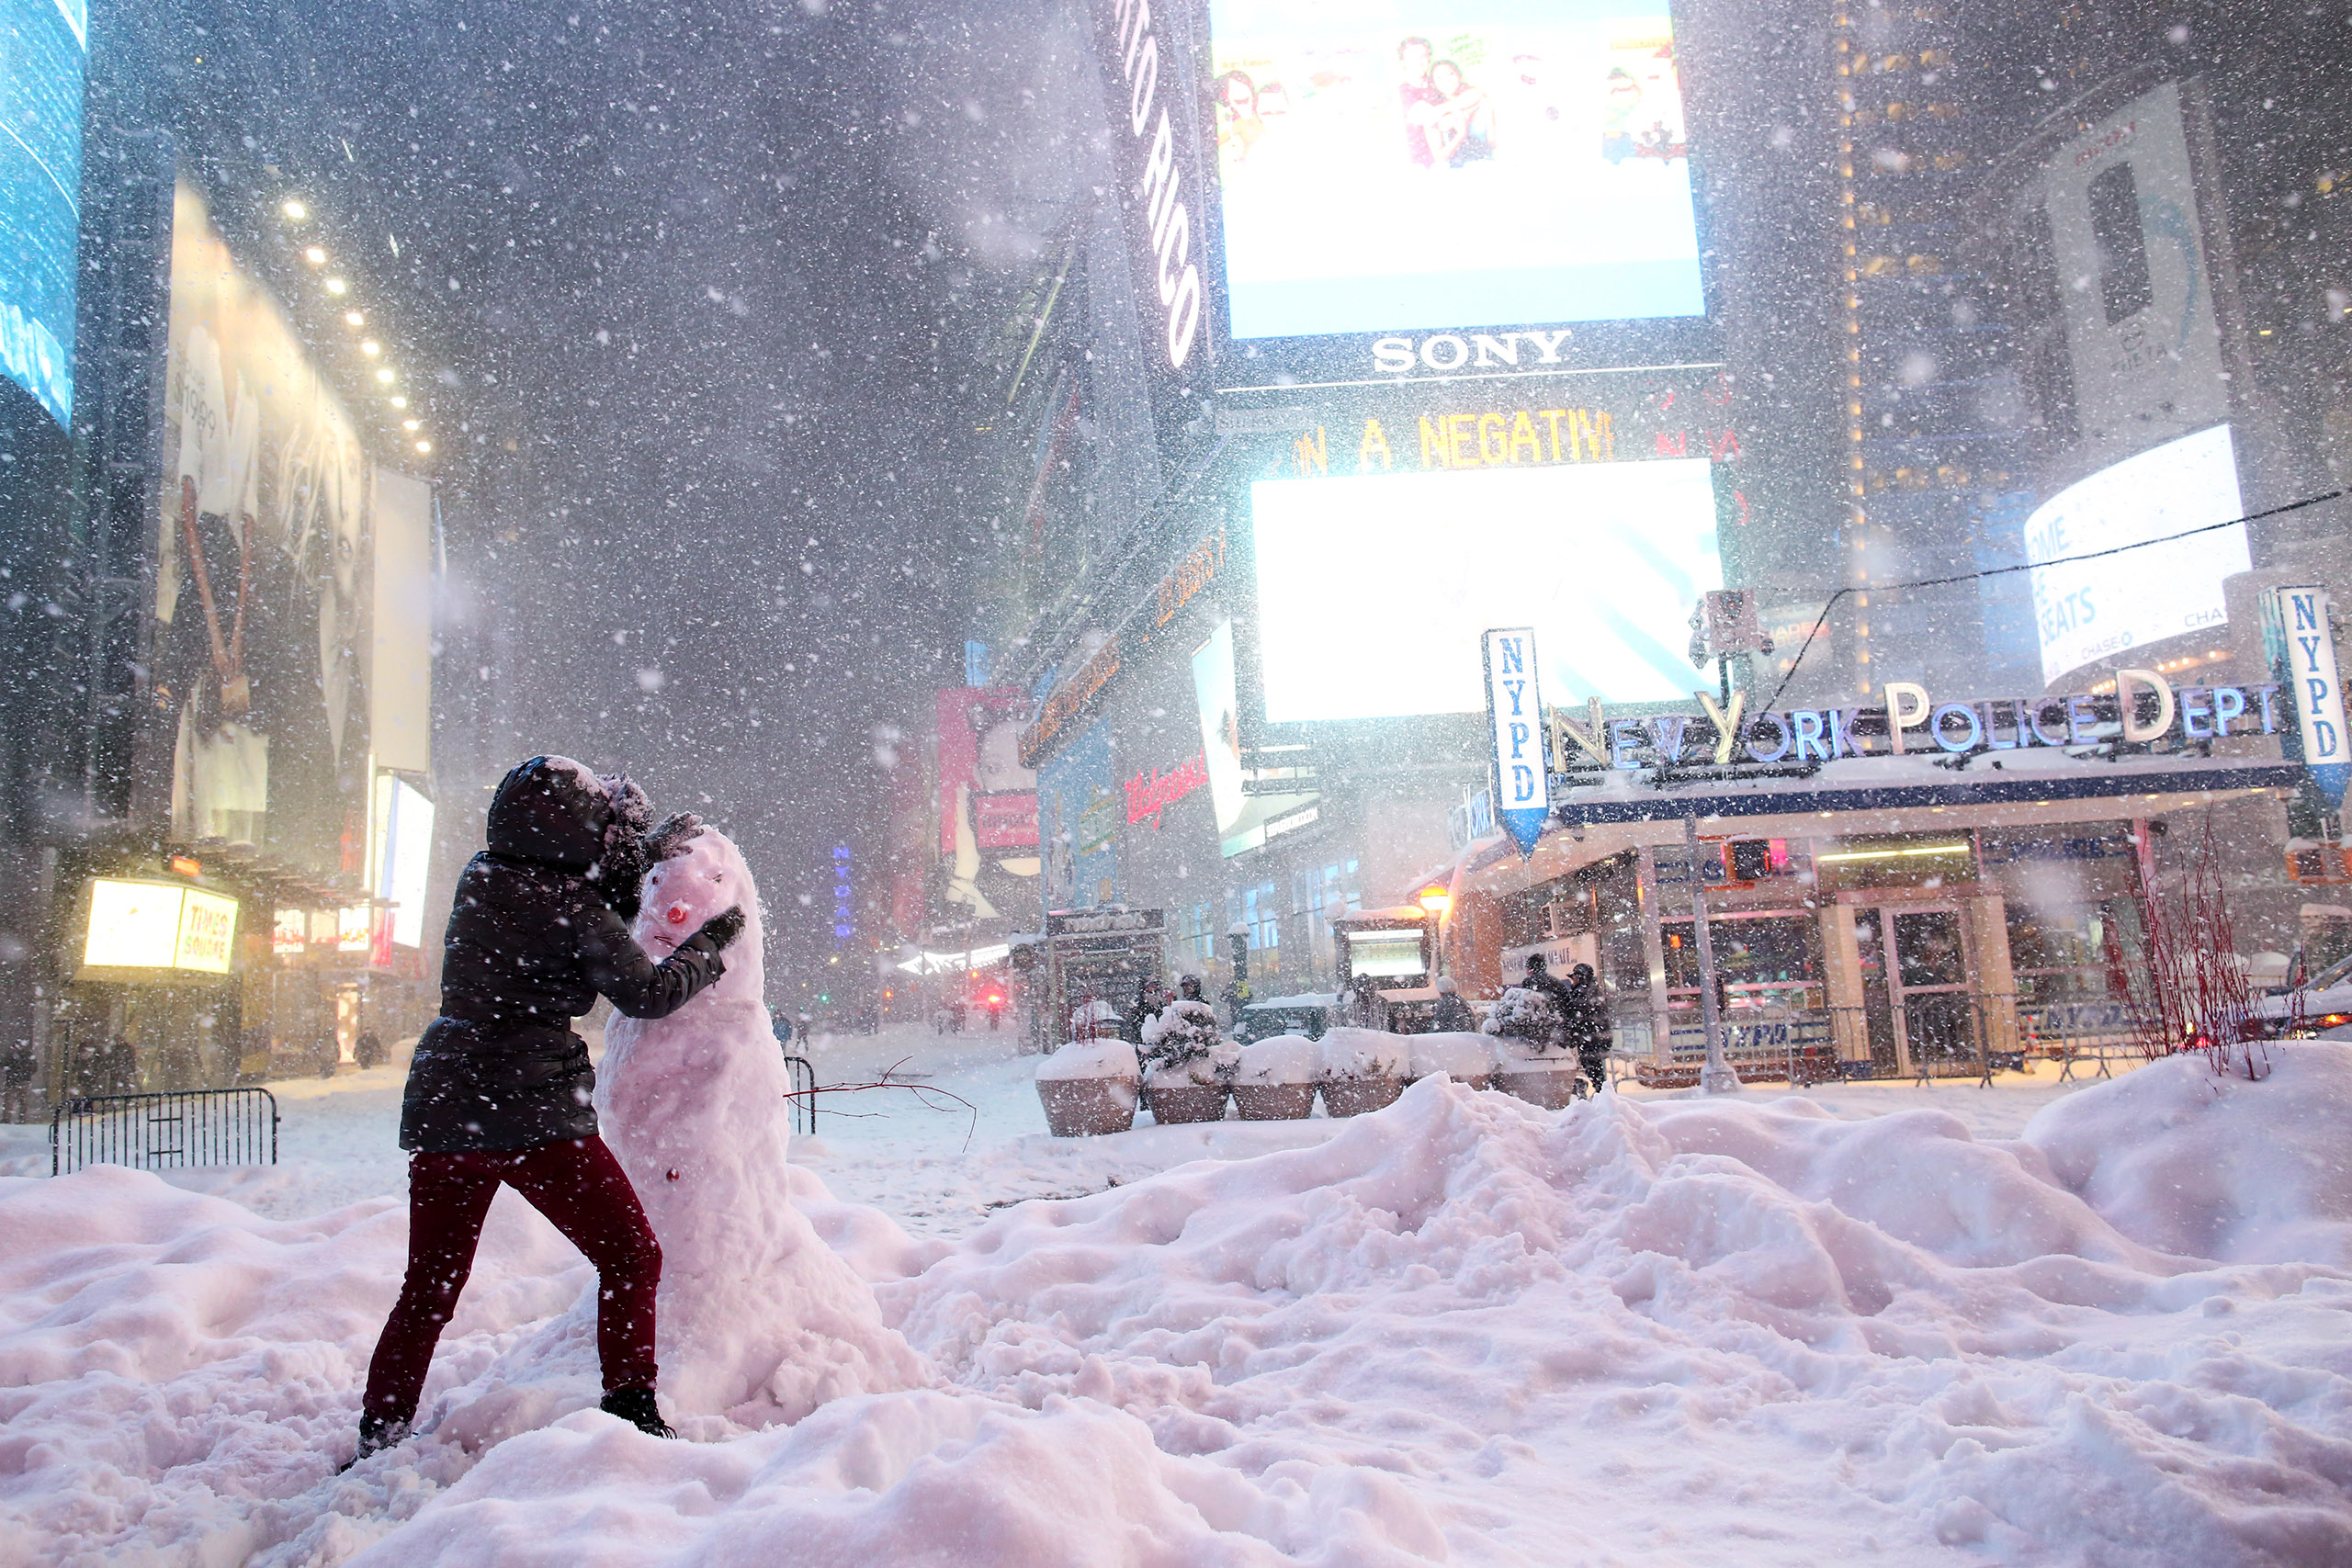 A woman decorates a snowman in Times Square as all cars but emergency vehicles are banned from driving on the road in New York City on Jan. 23, 2016.